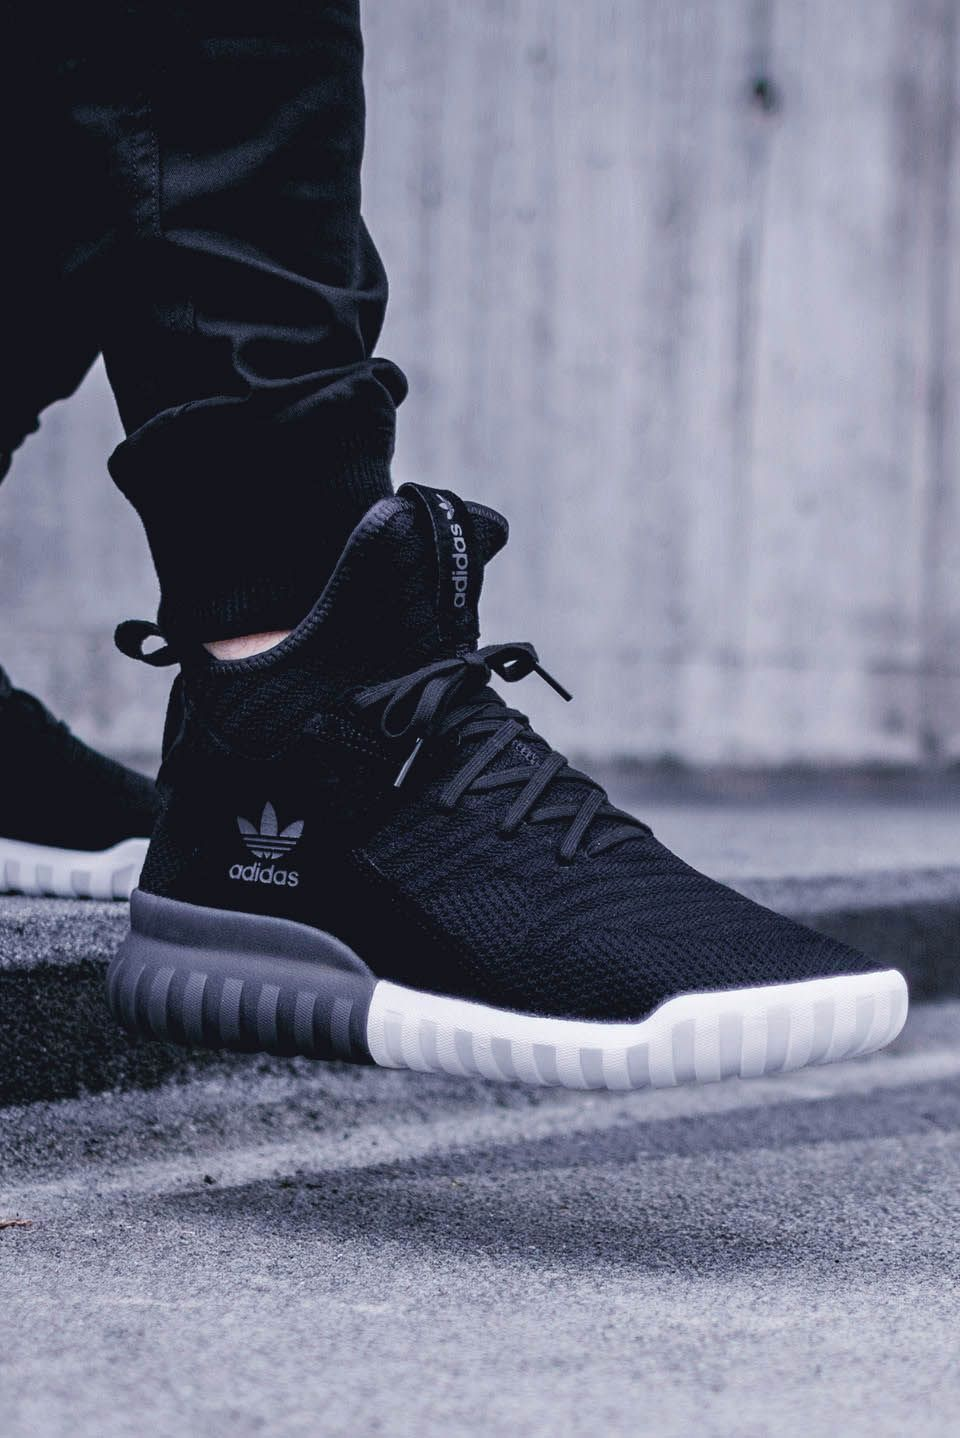 new concept ae632 e17a9 Affordable luxury, the Adidas Tubular X Primeknit